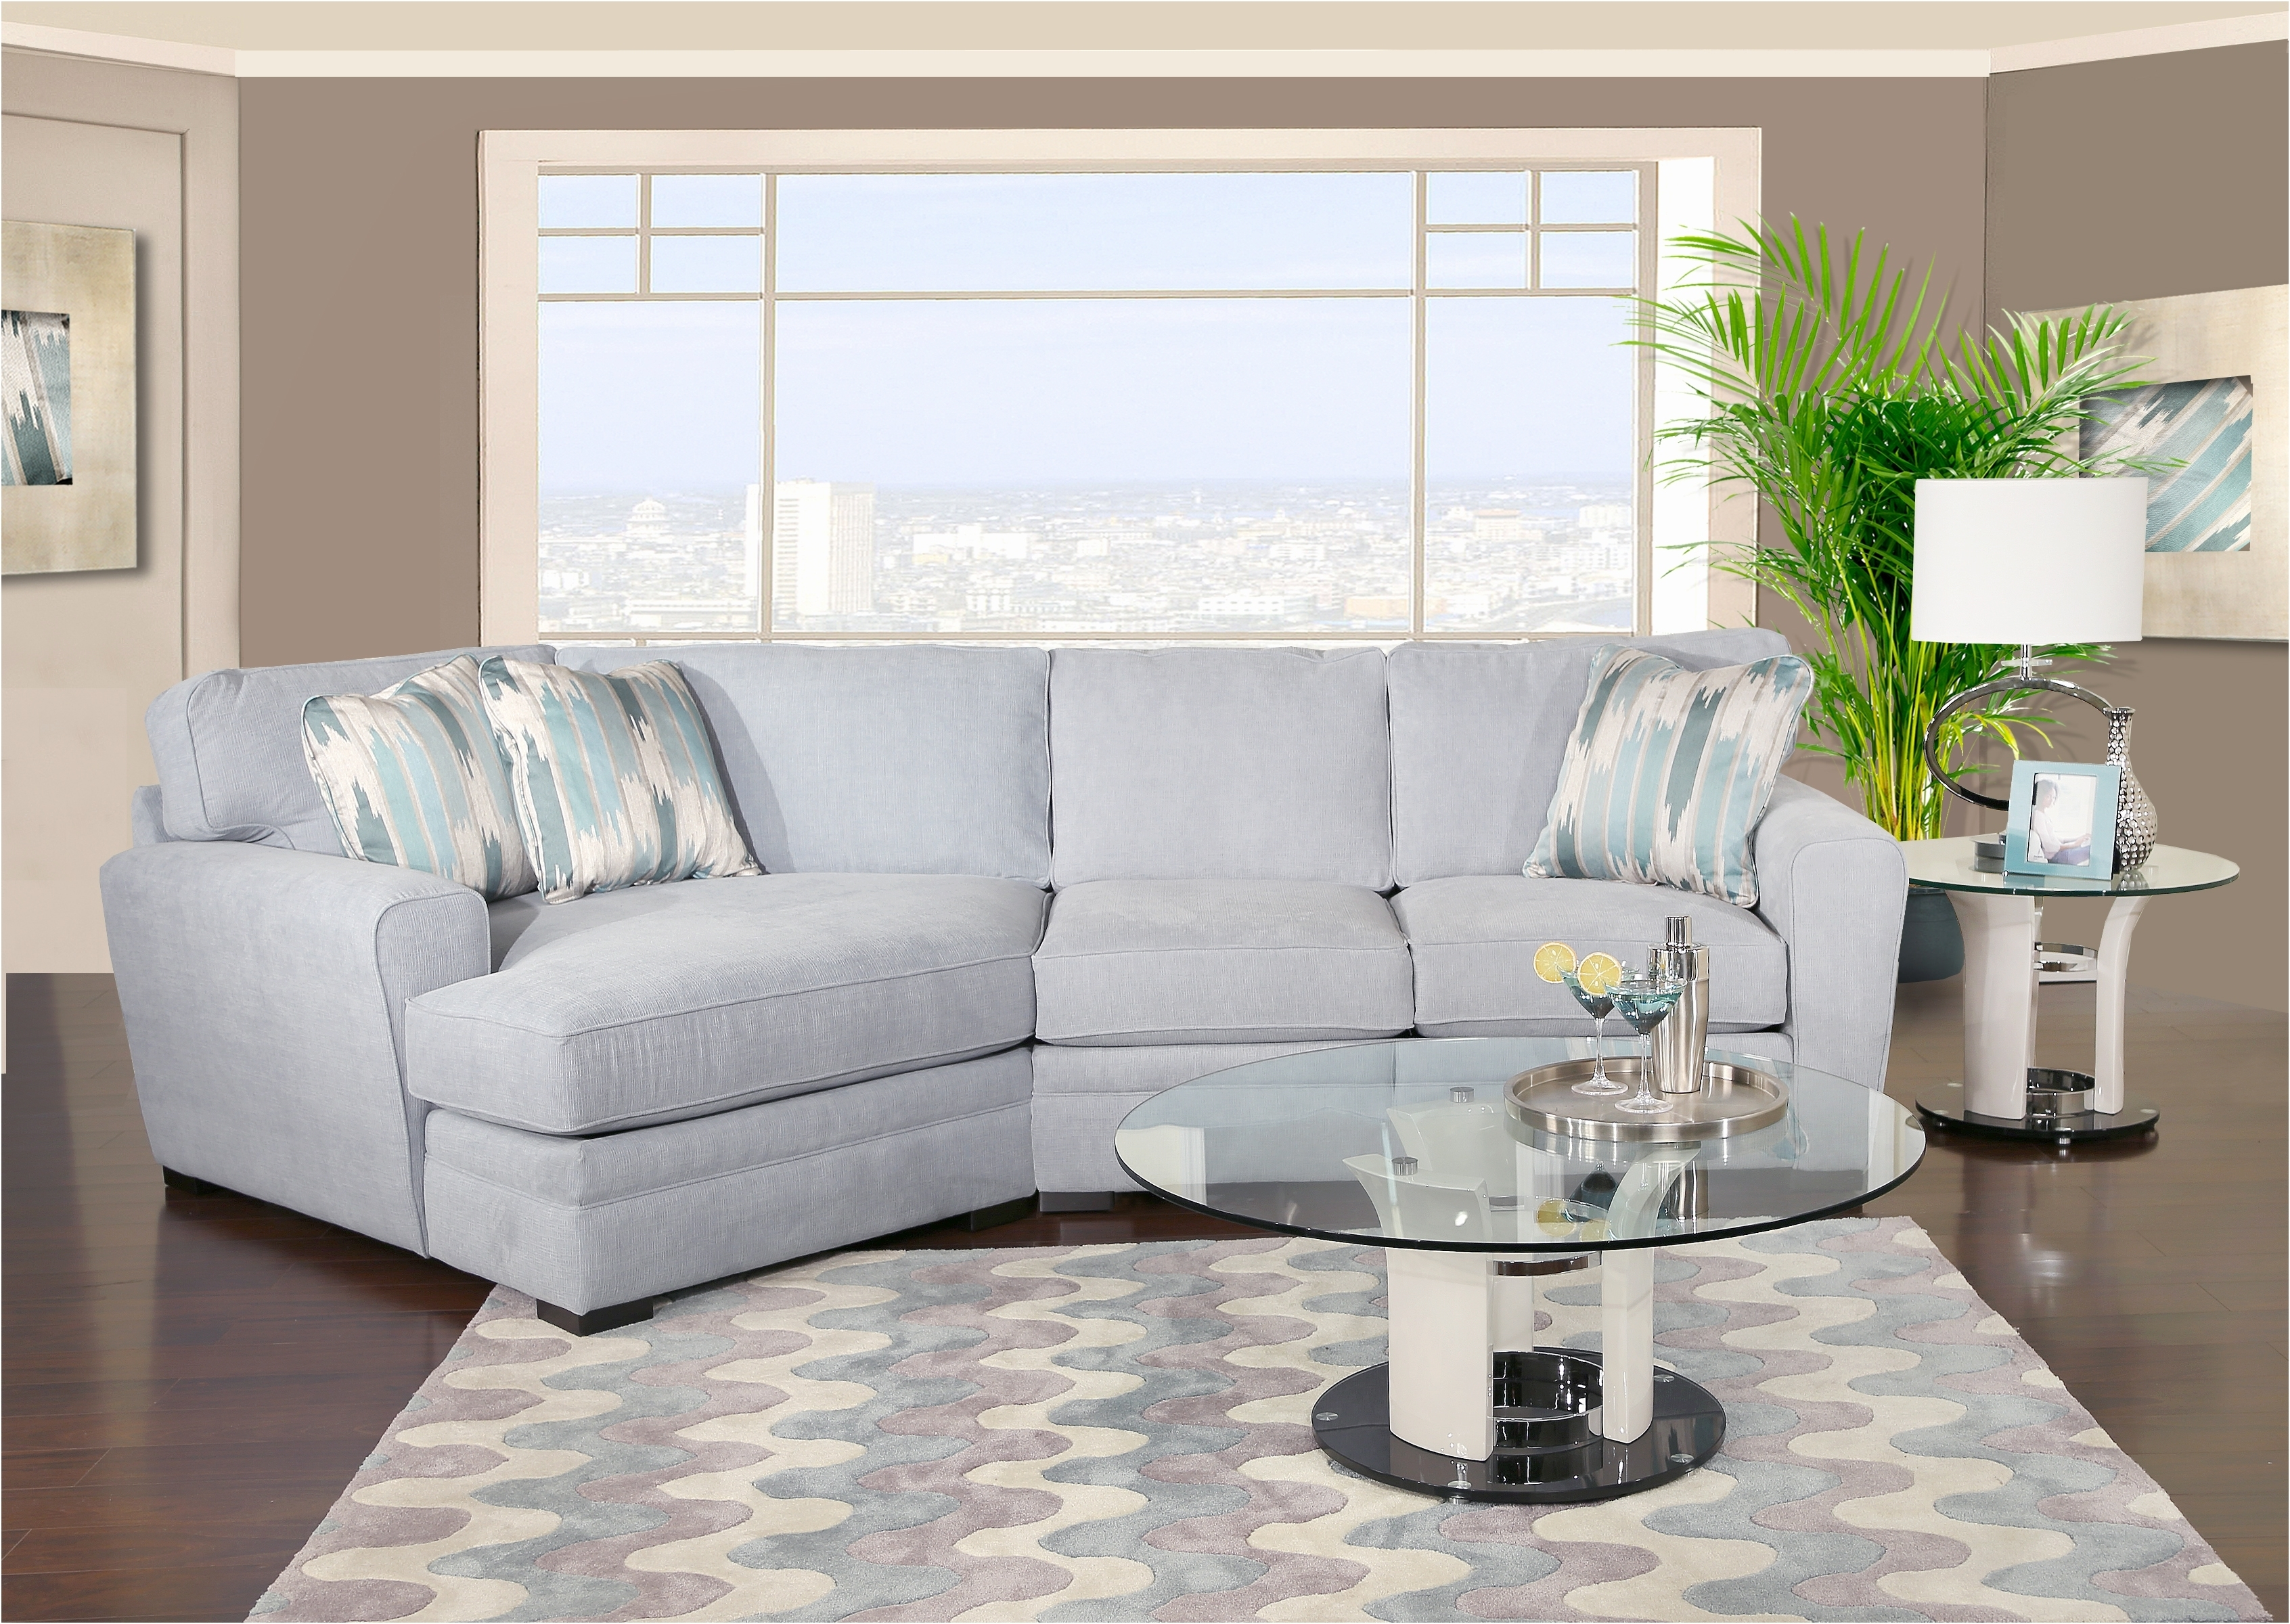 Sectional Sofa With Cuddler Chaise | Home Design Ideas And Inspiration in Kanes Sectional Sofas (Image 9 of 10)